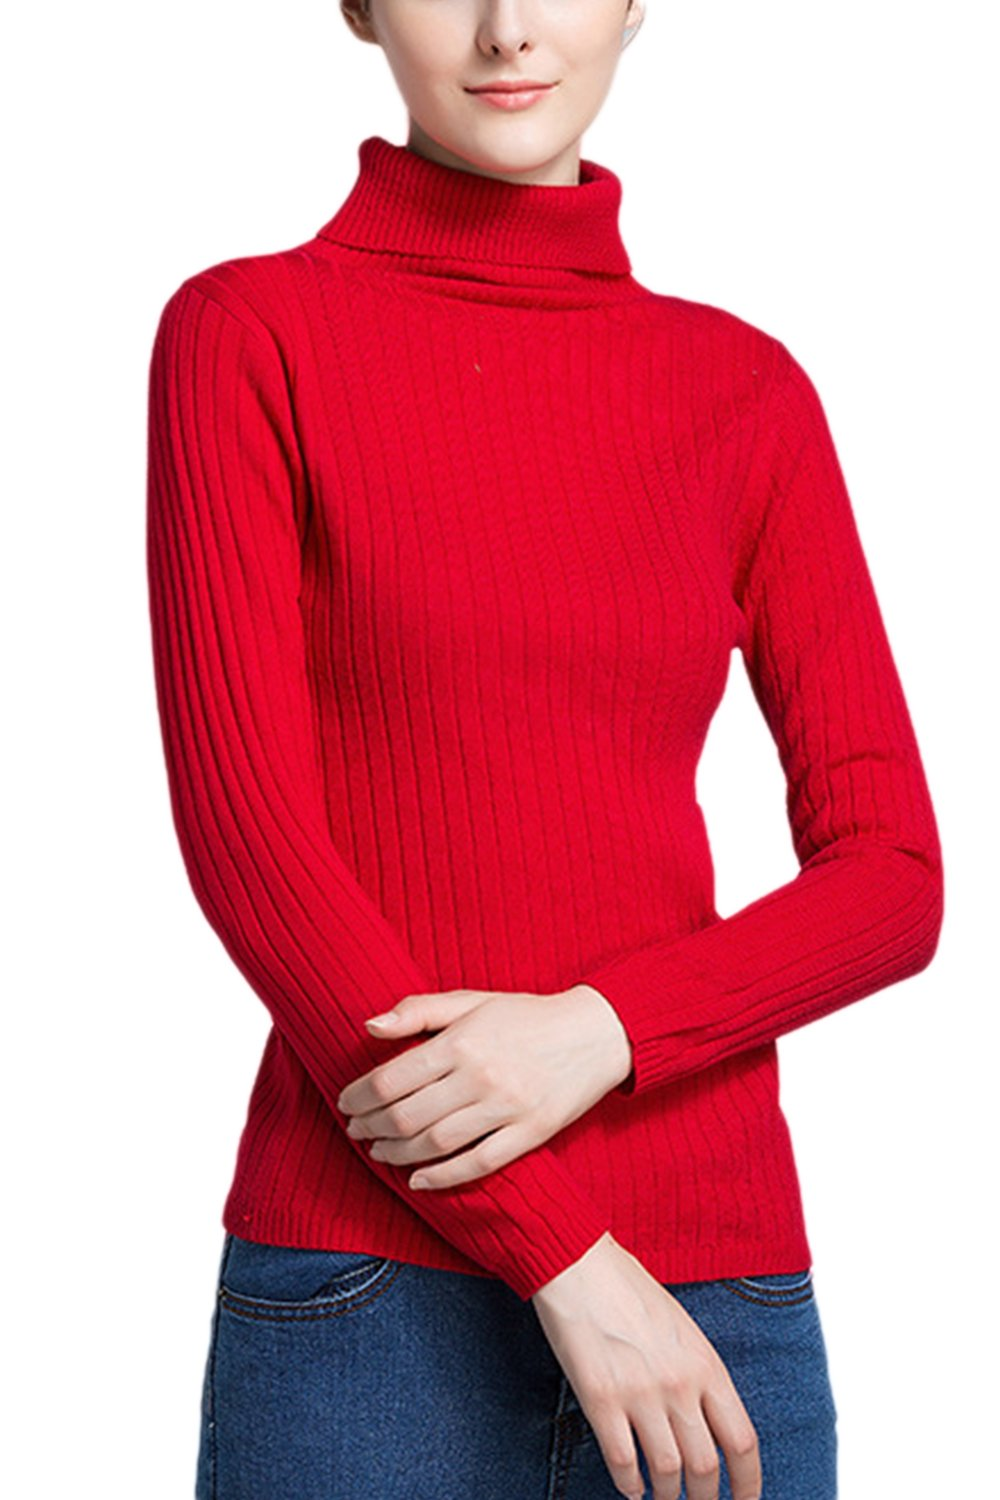 Women Long Sleeved Turtleneck Knitted Slim Base Shirt Sweater Top CAFESPWLKJ006